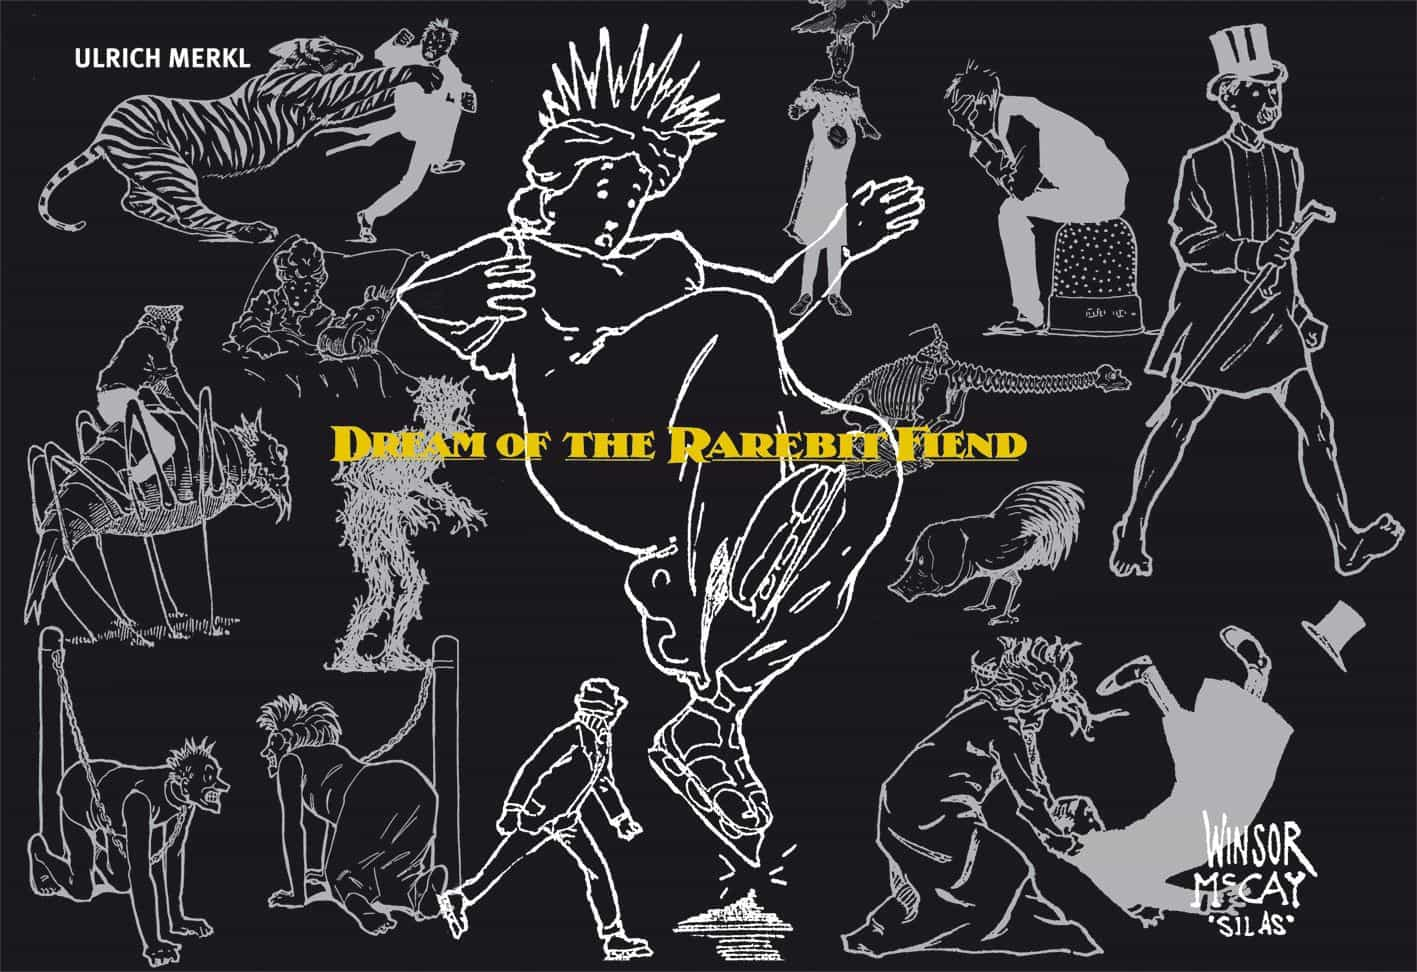 DREAM OF THE RAREBIT FIEND